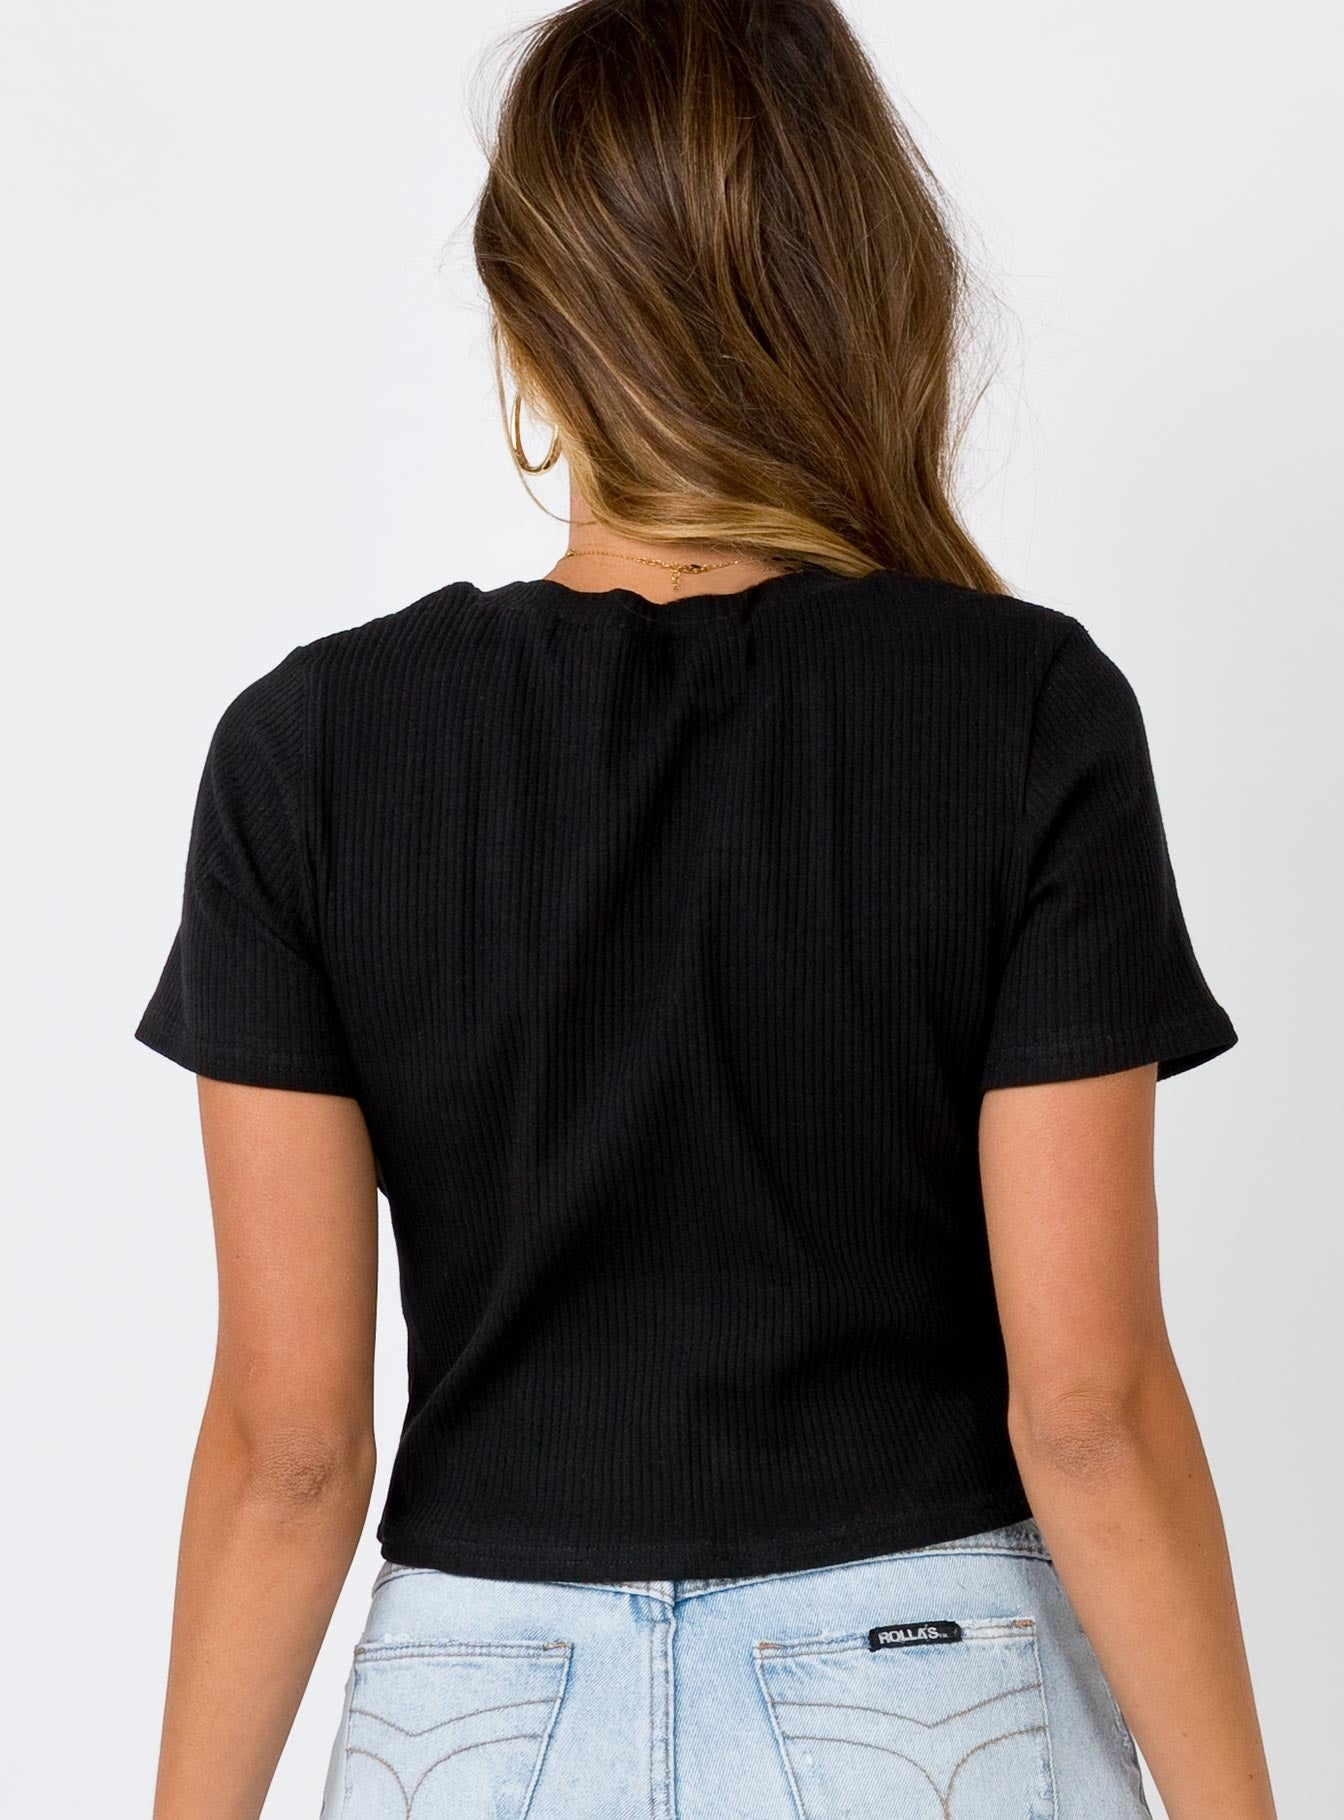 The Baby Girl Tee Black